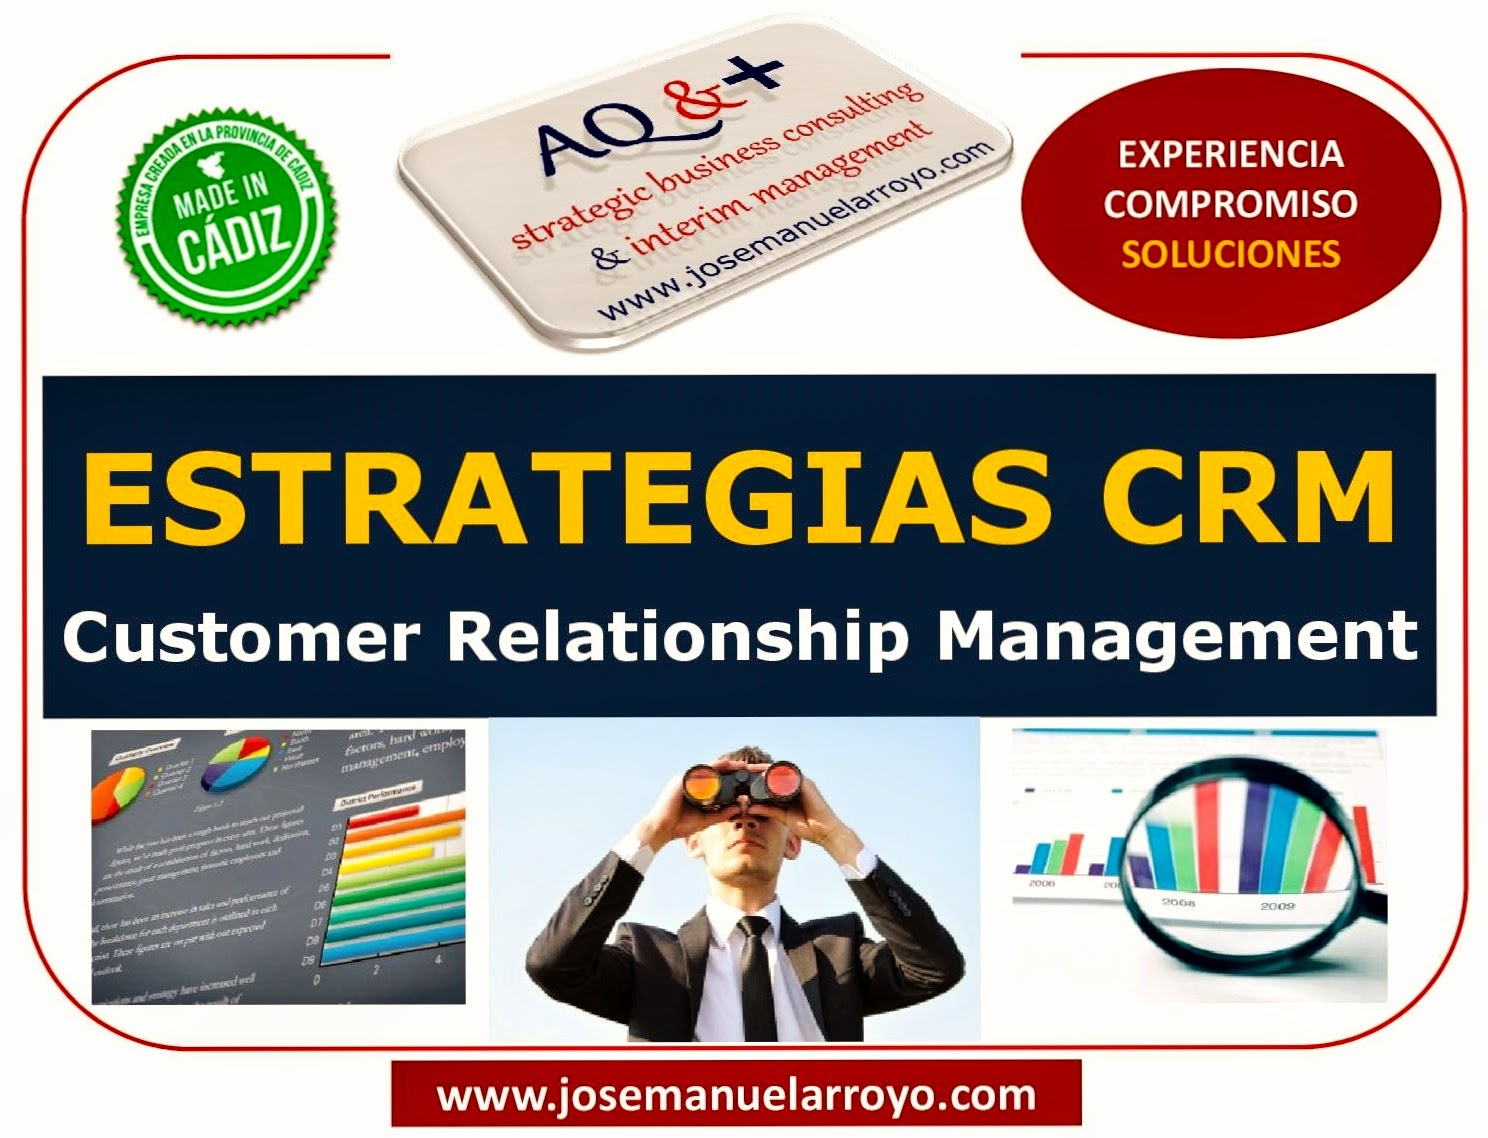 ESTRATEGIAS CRM. CUSTOMER RELATIONSHIP MANAGEMENT